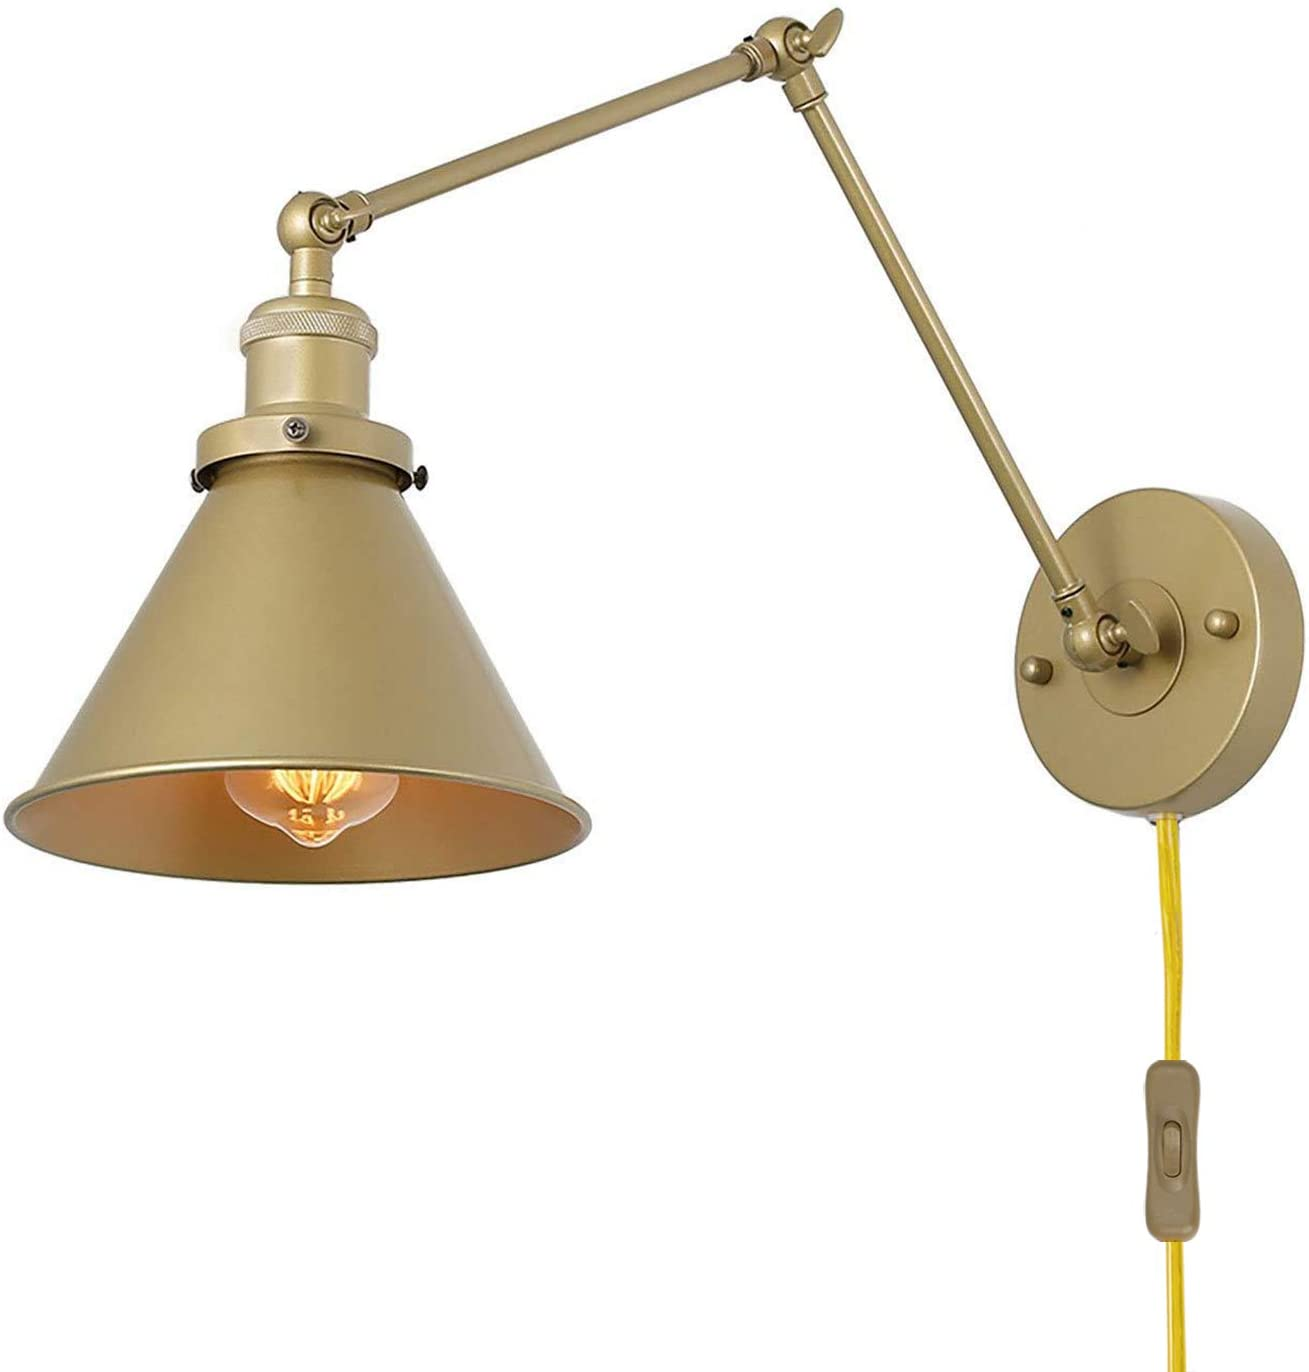 LNC Swing Arm Wall Sconce Lighting Max 88% OFF favorite Plug-in Gold Lamp Adjustable